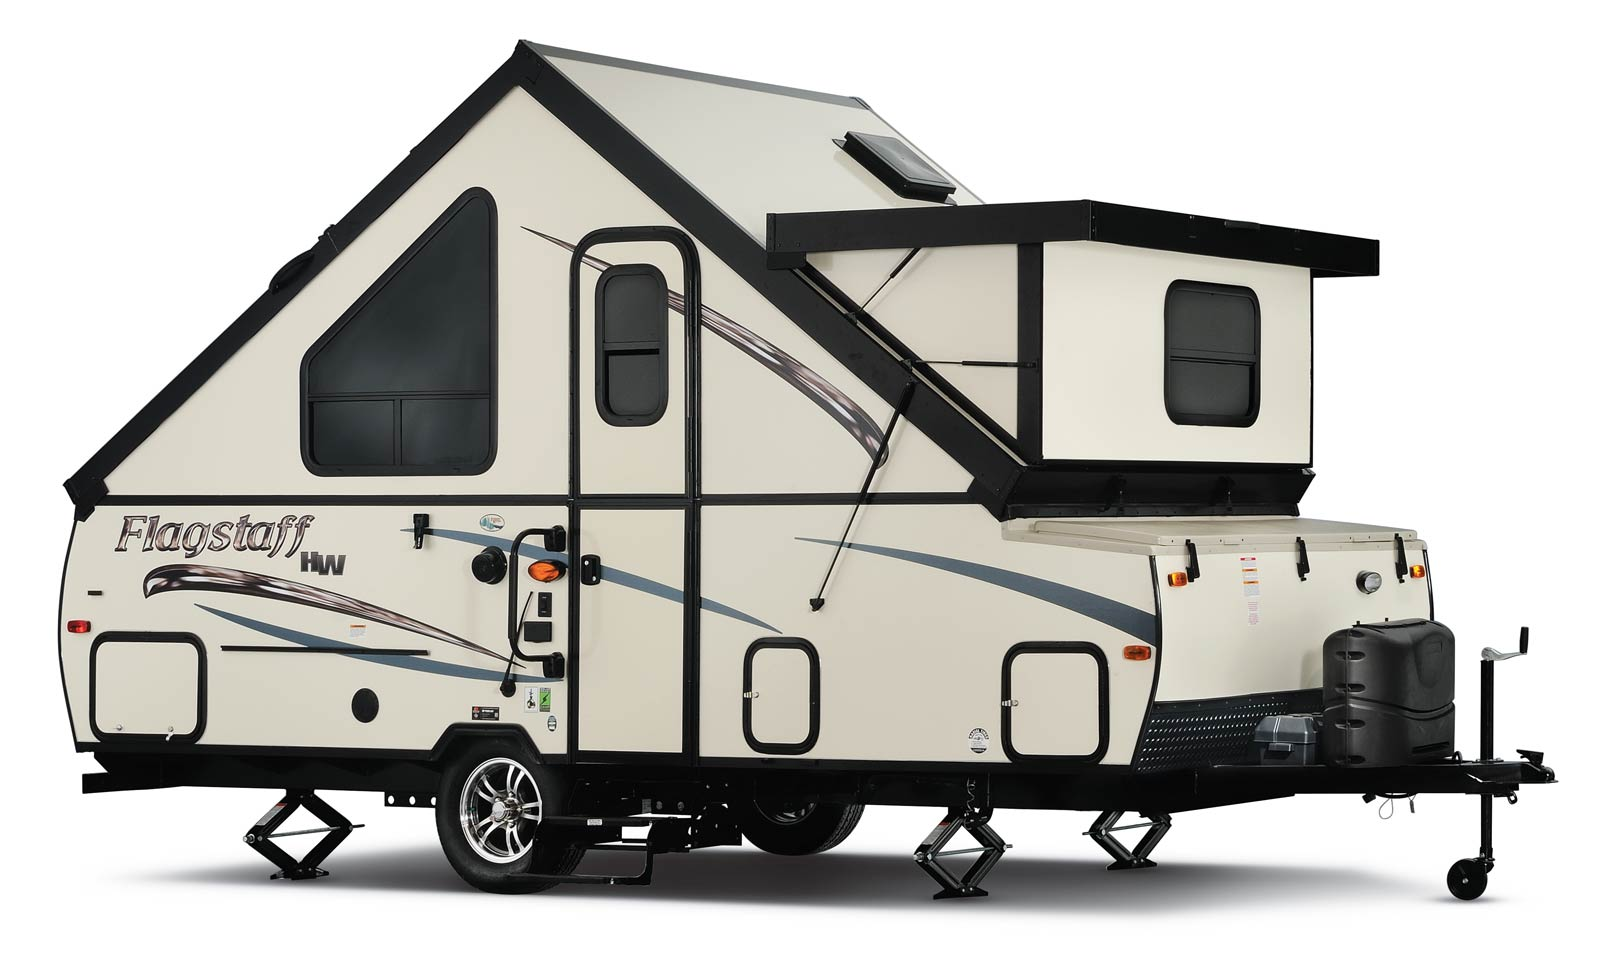 Bought & Sold a Camper in 5 Months, A Cautionary Tale : GoRVing